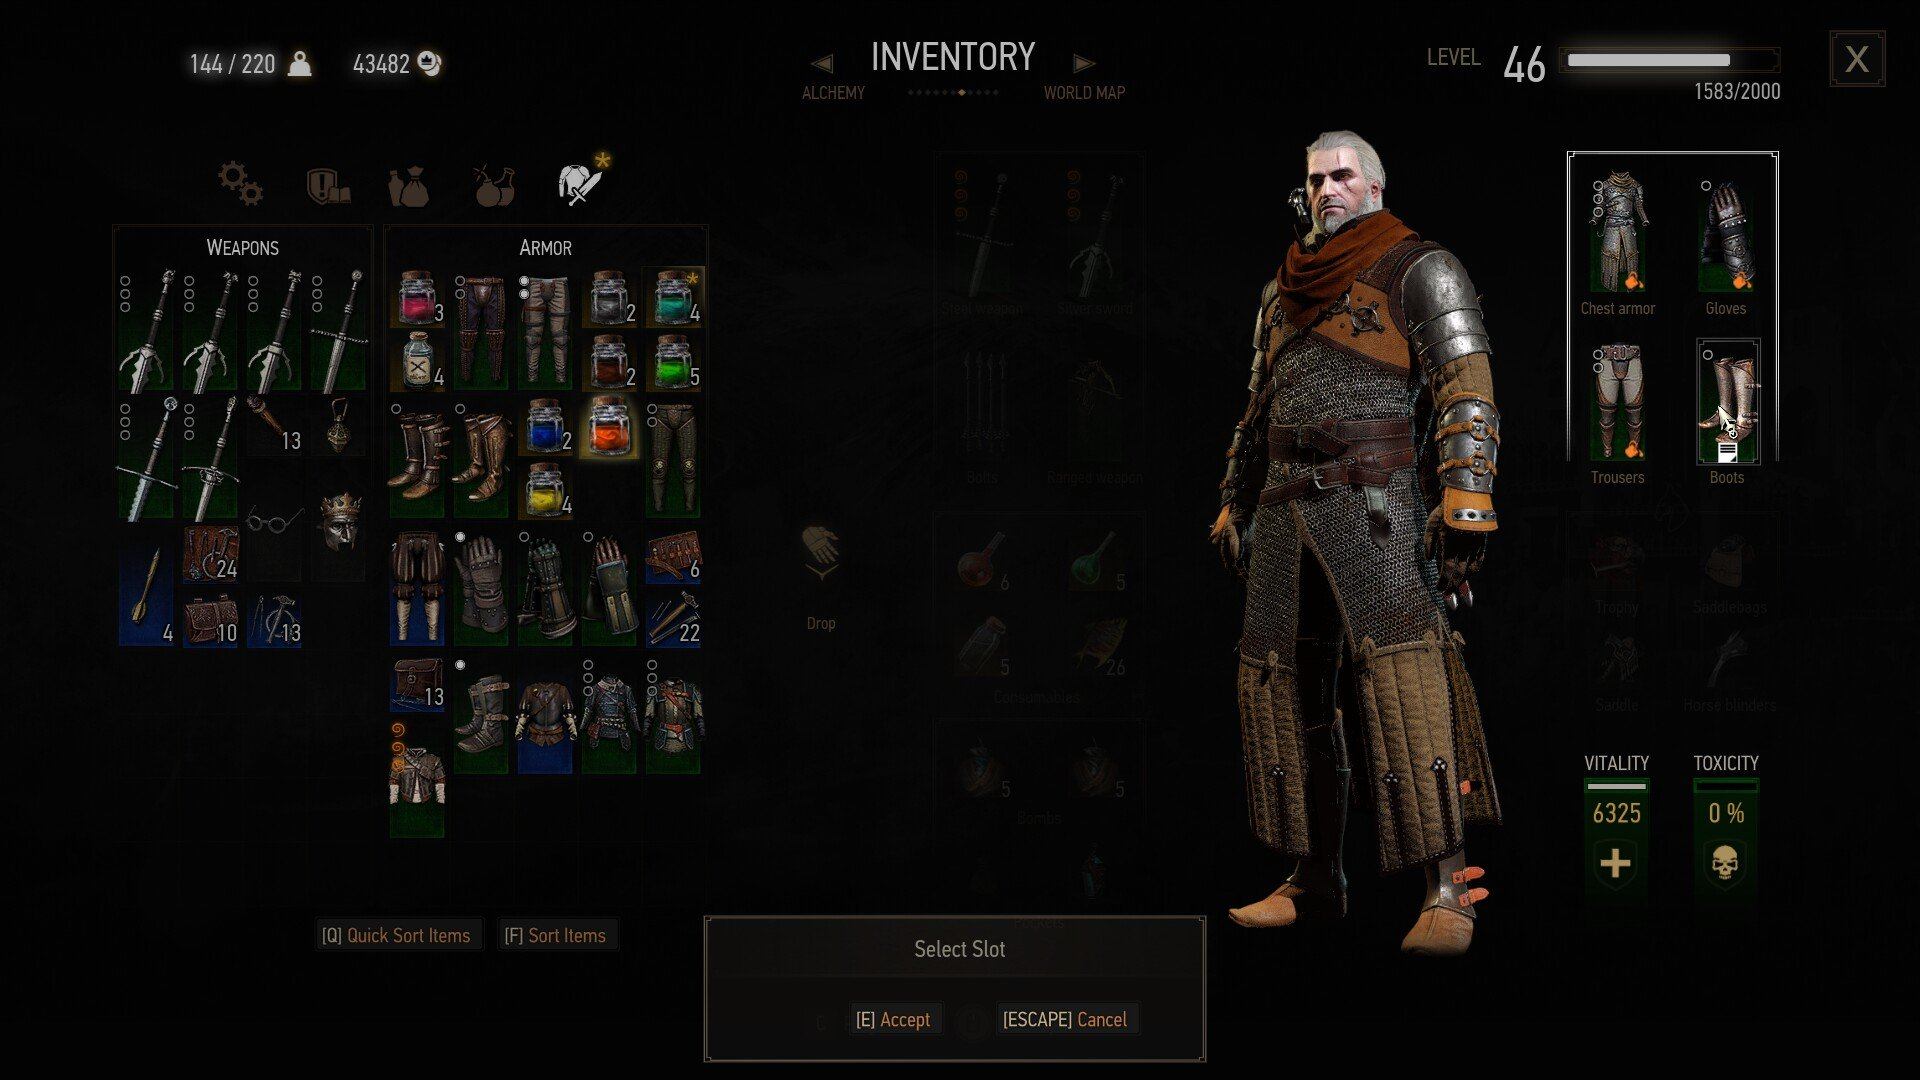 Inventory screen - Witcher 3 armor dyes